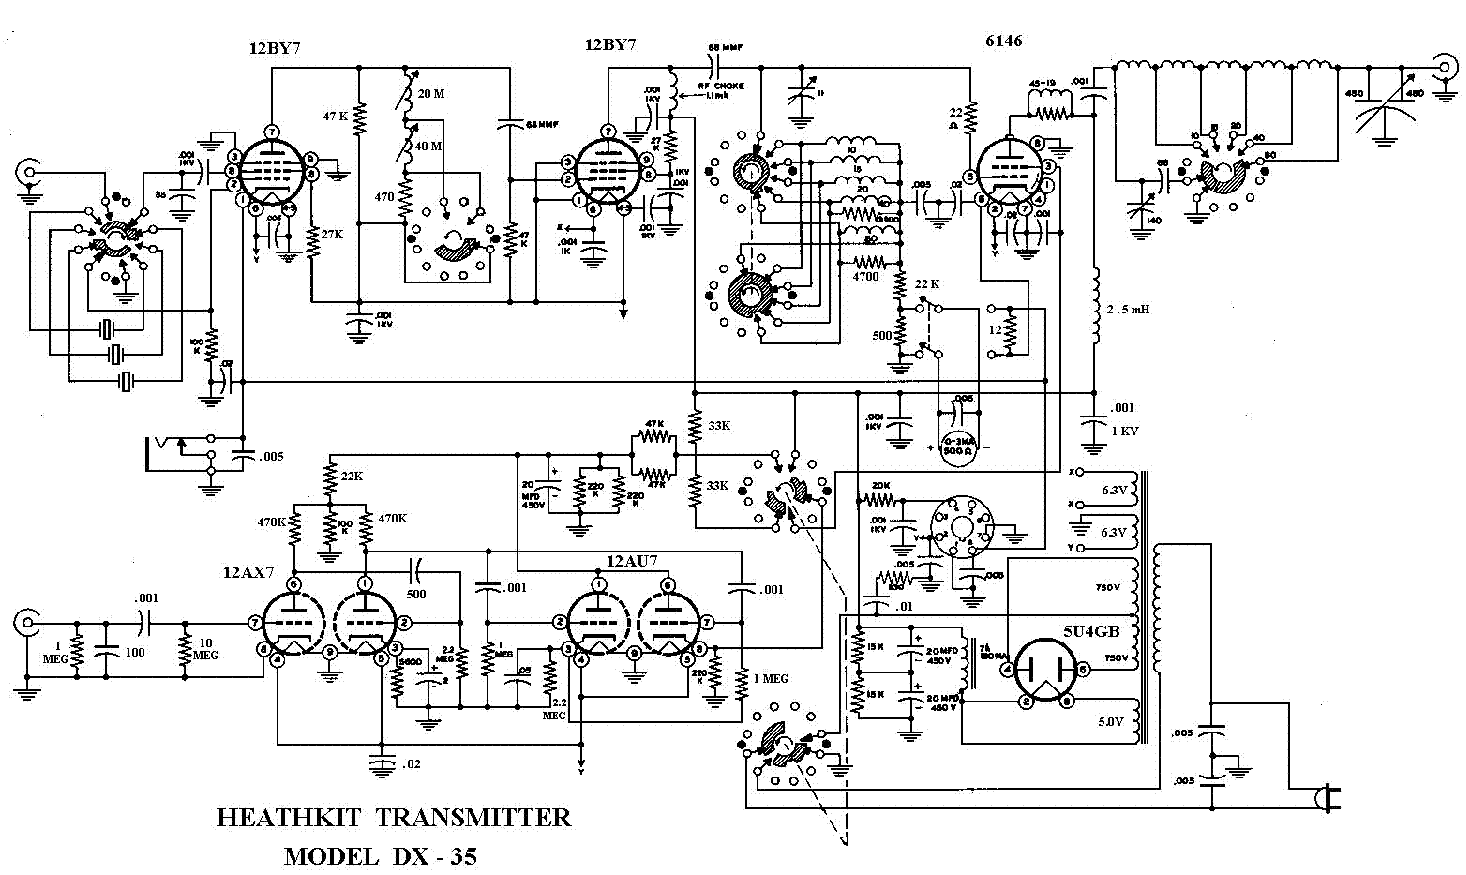 60 amp service diagram